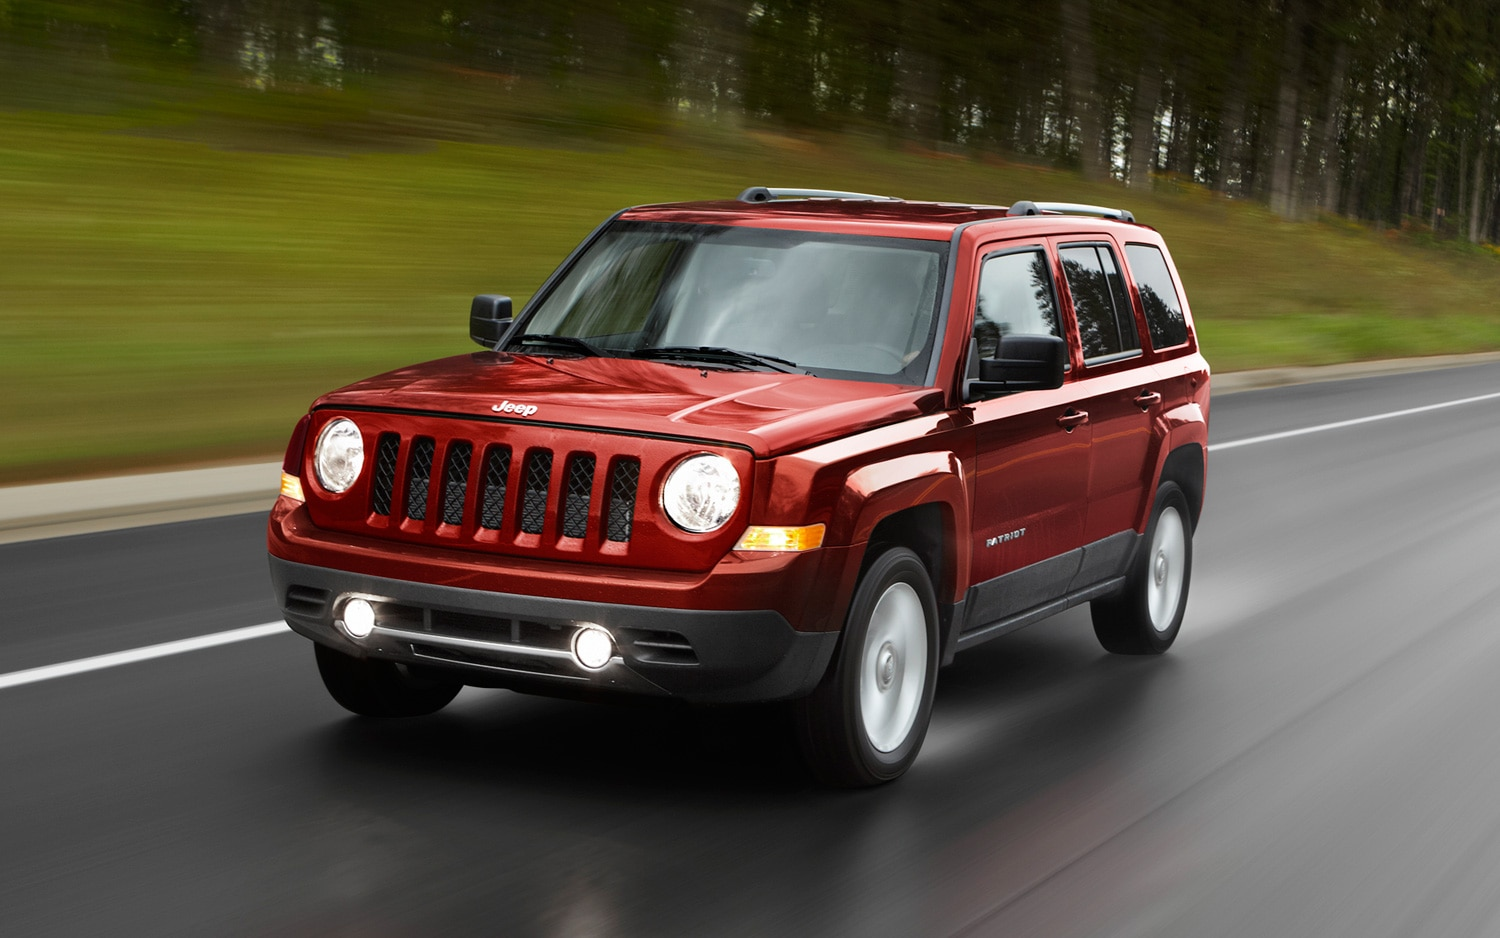 chrysler ceo marchionne to kill jeep compass, replace chrysler